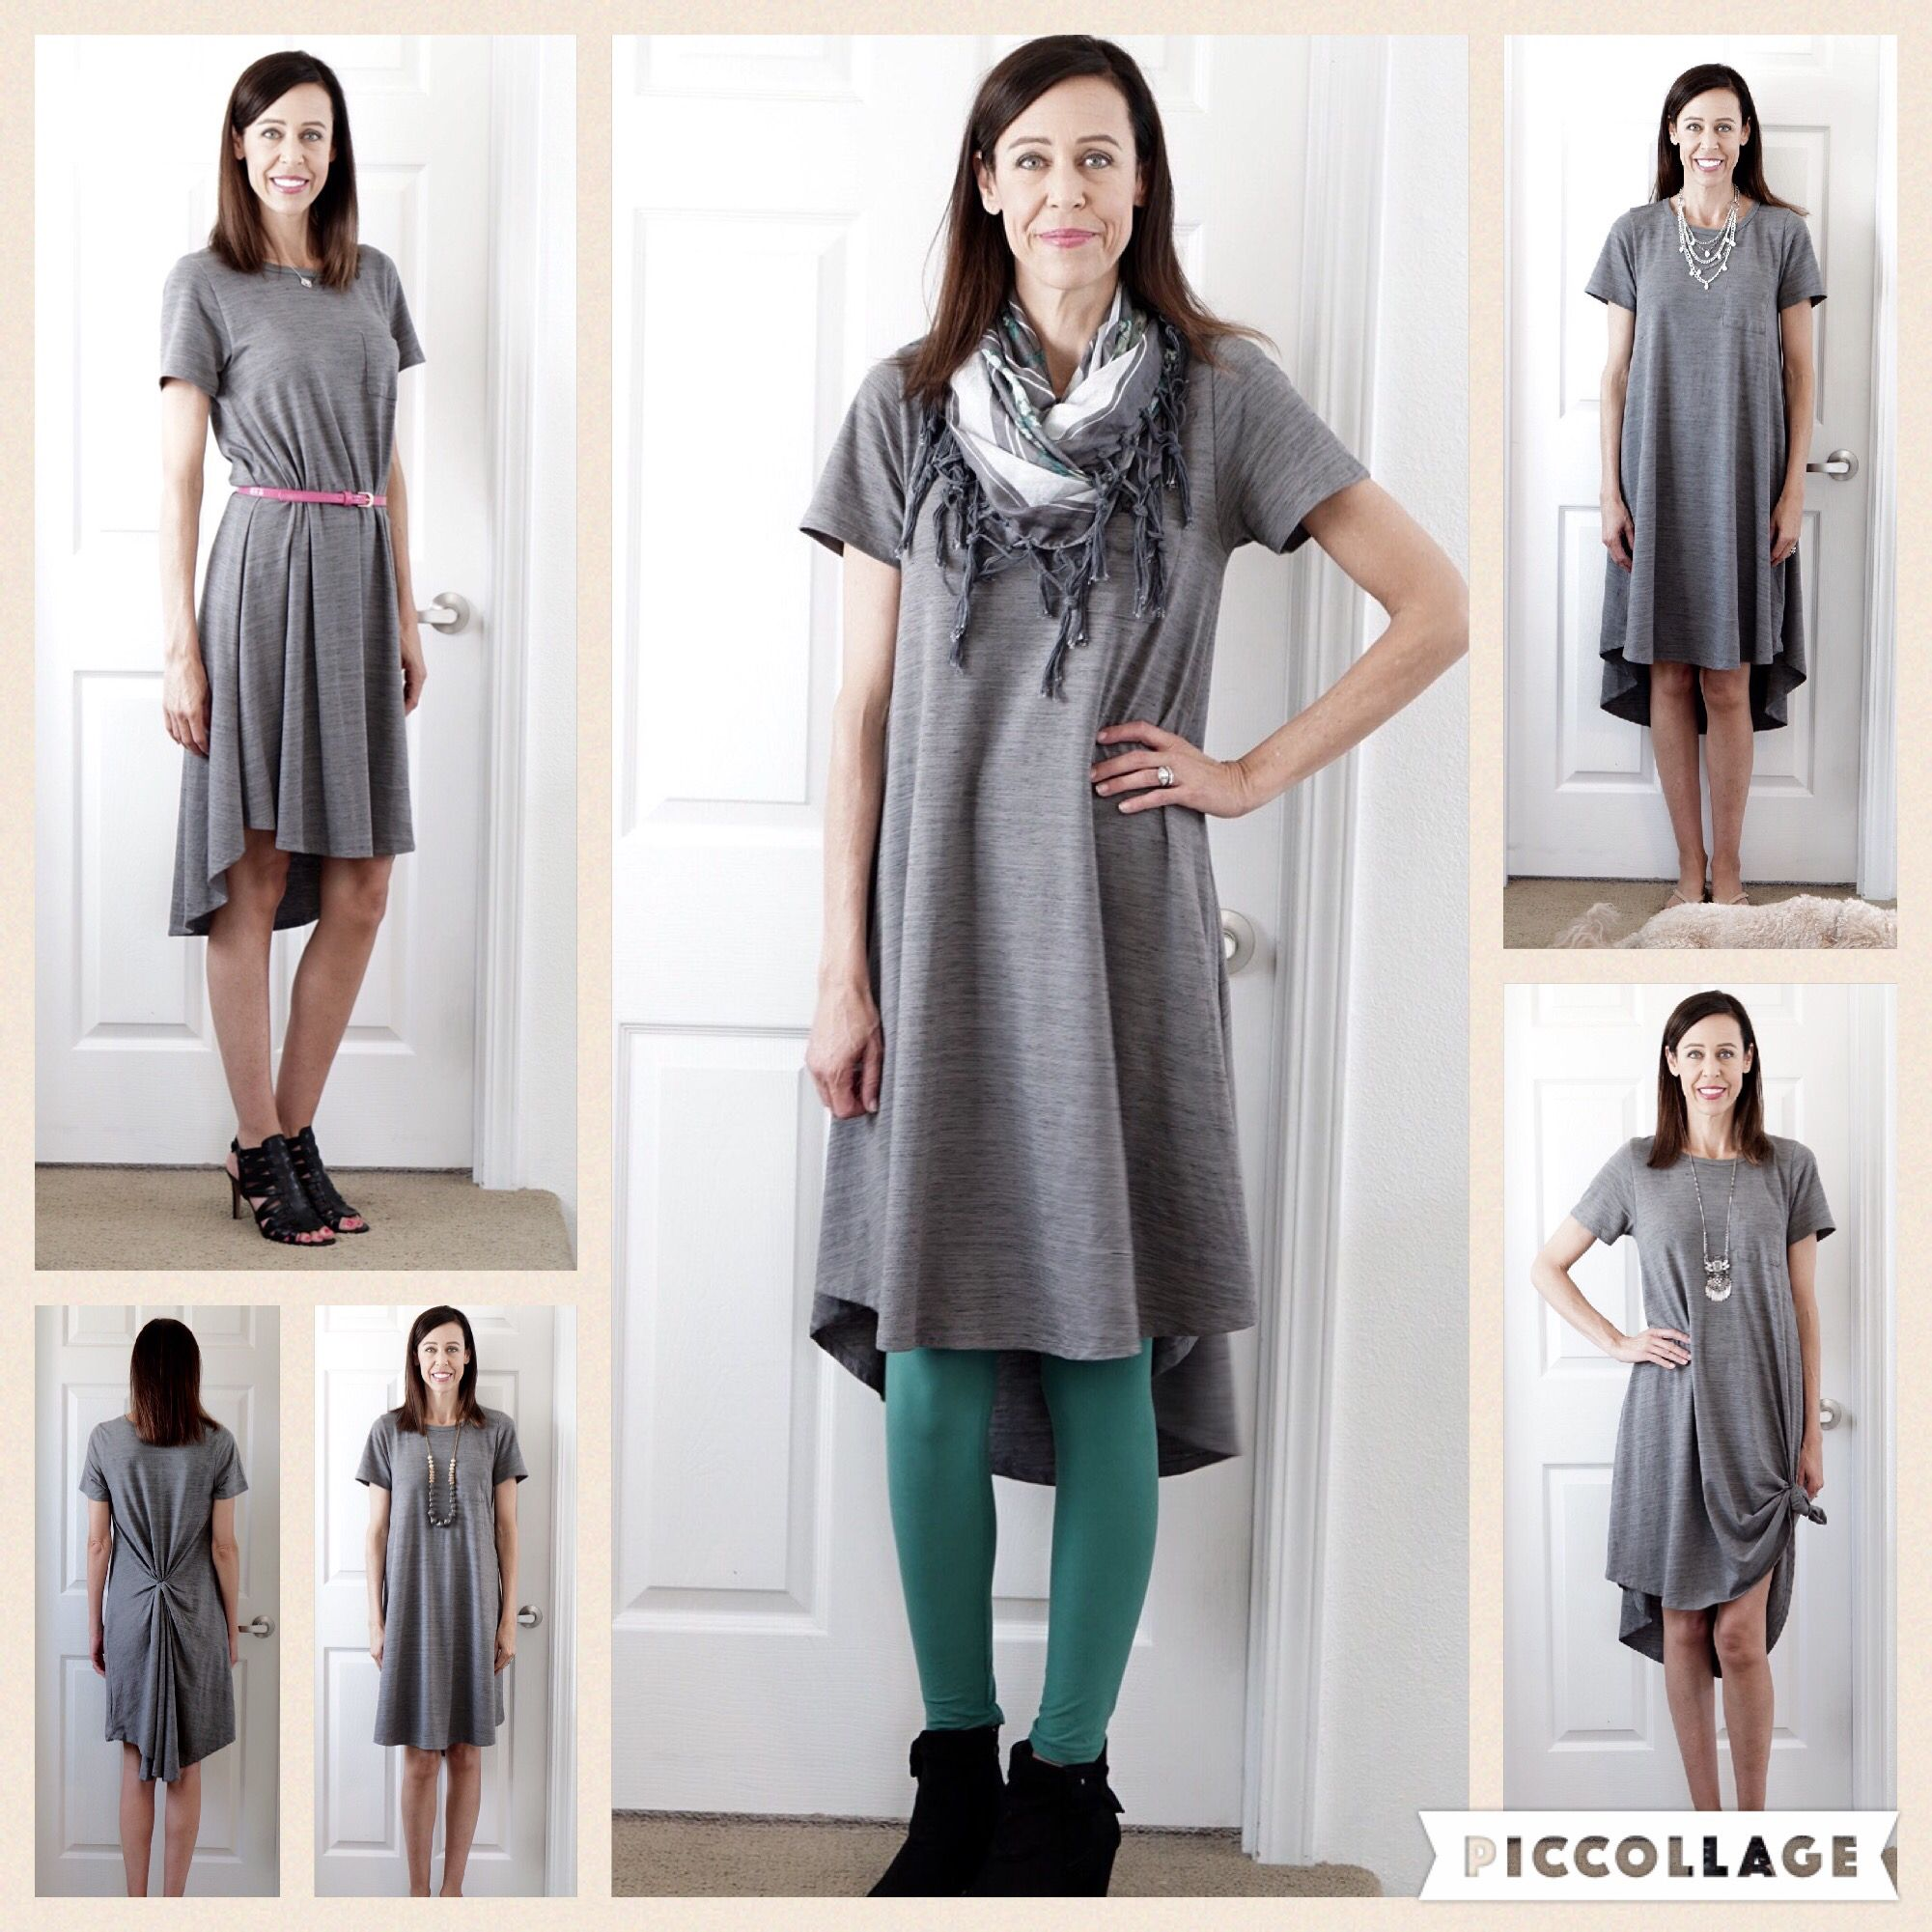 Pin by Living In LuLaRoe on Styling Tips | Fashion, Style ...